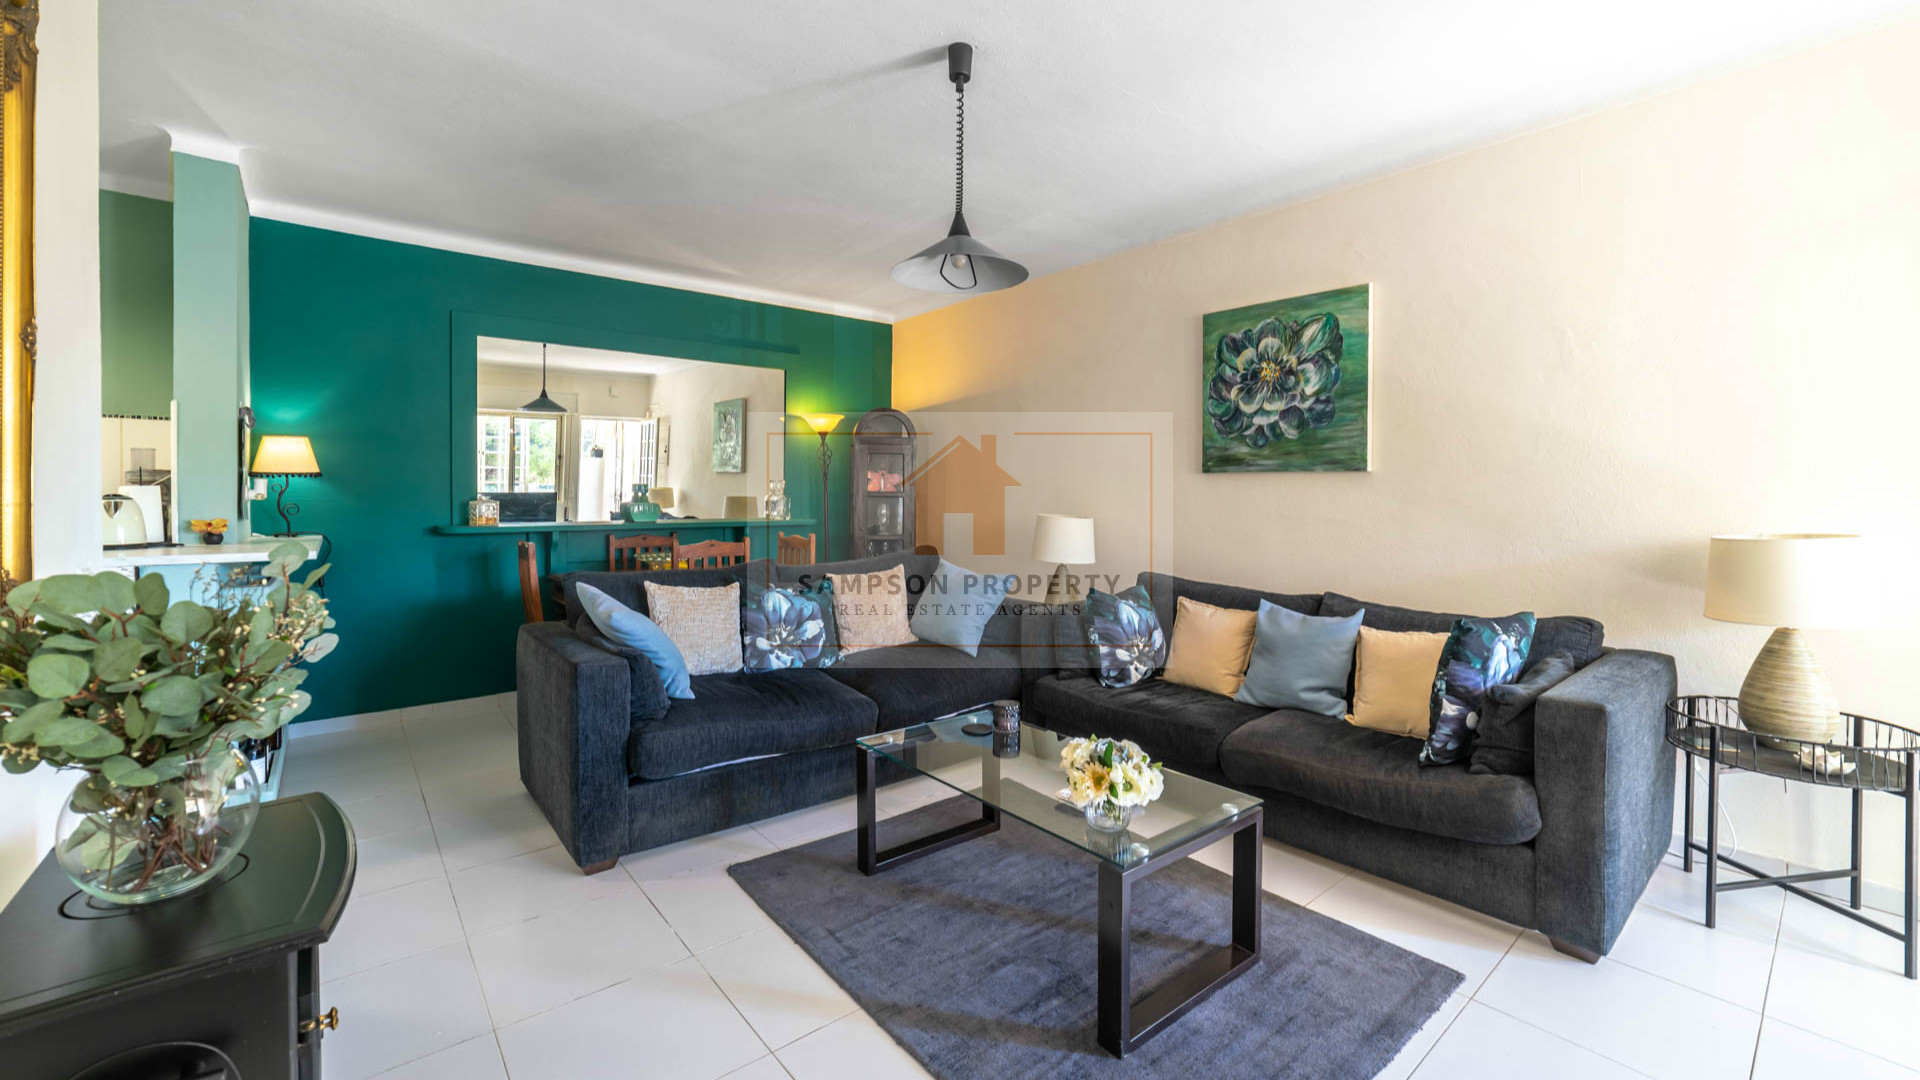 For sale, Renovated 1 bedroom apartment Centeanes beach